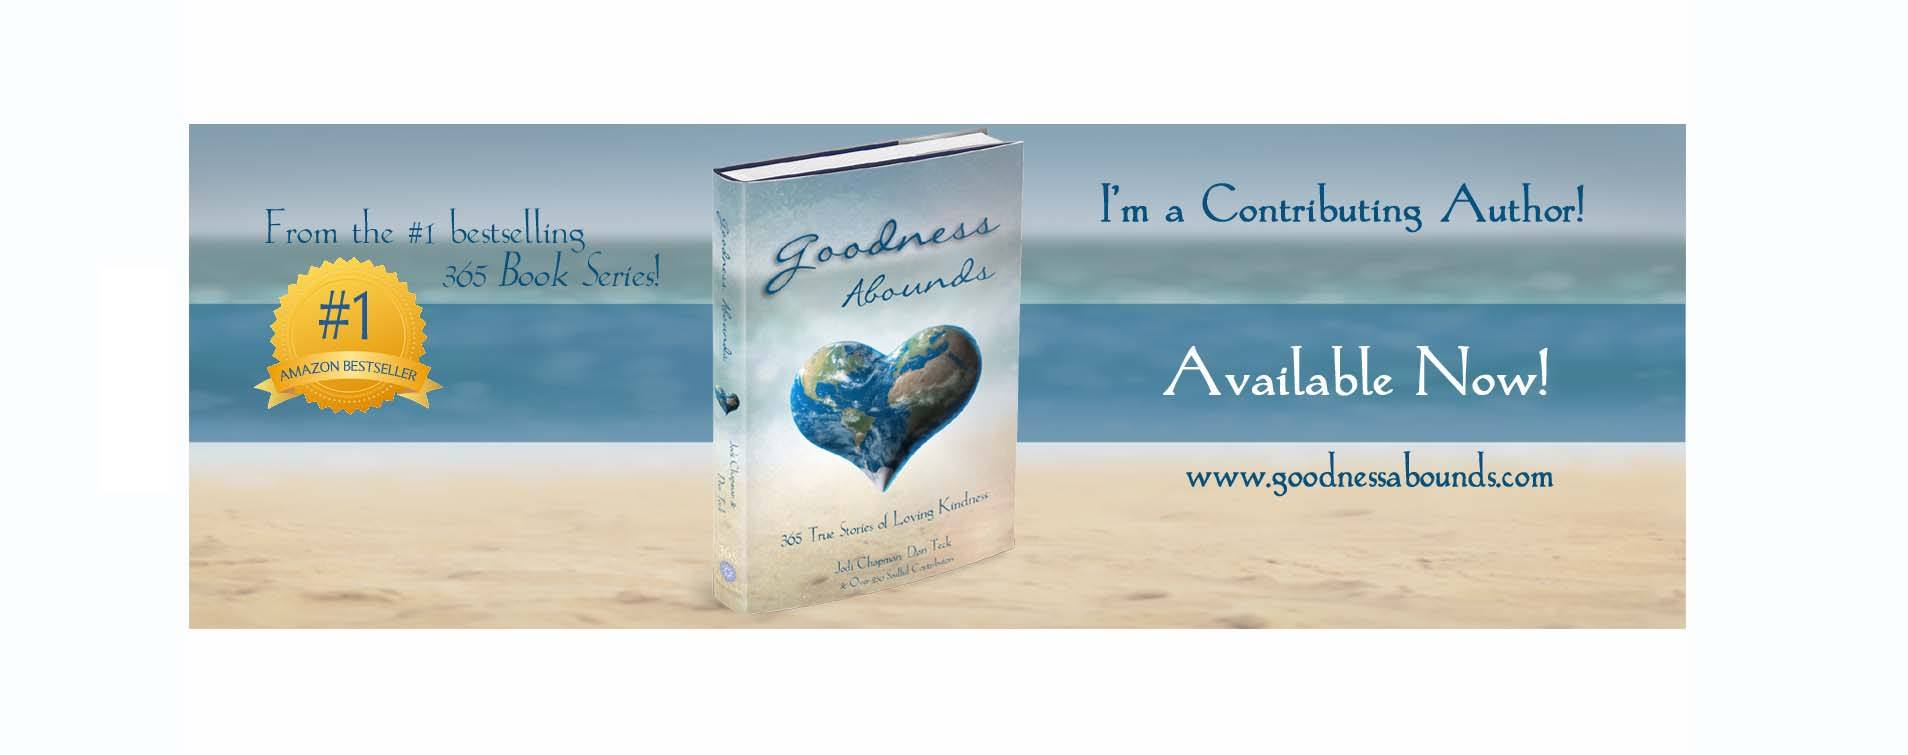 Sharon Smith is a contributing author in Goodness Abounds: 365 True Stories of Loving Kindness, an Amazon Bestseller.